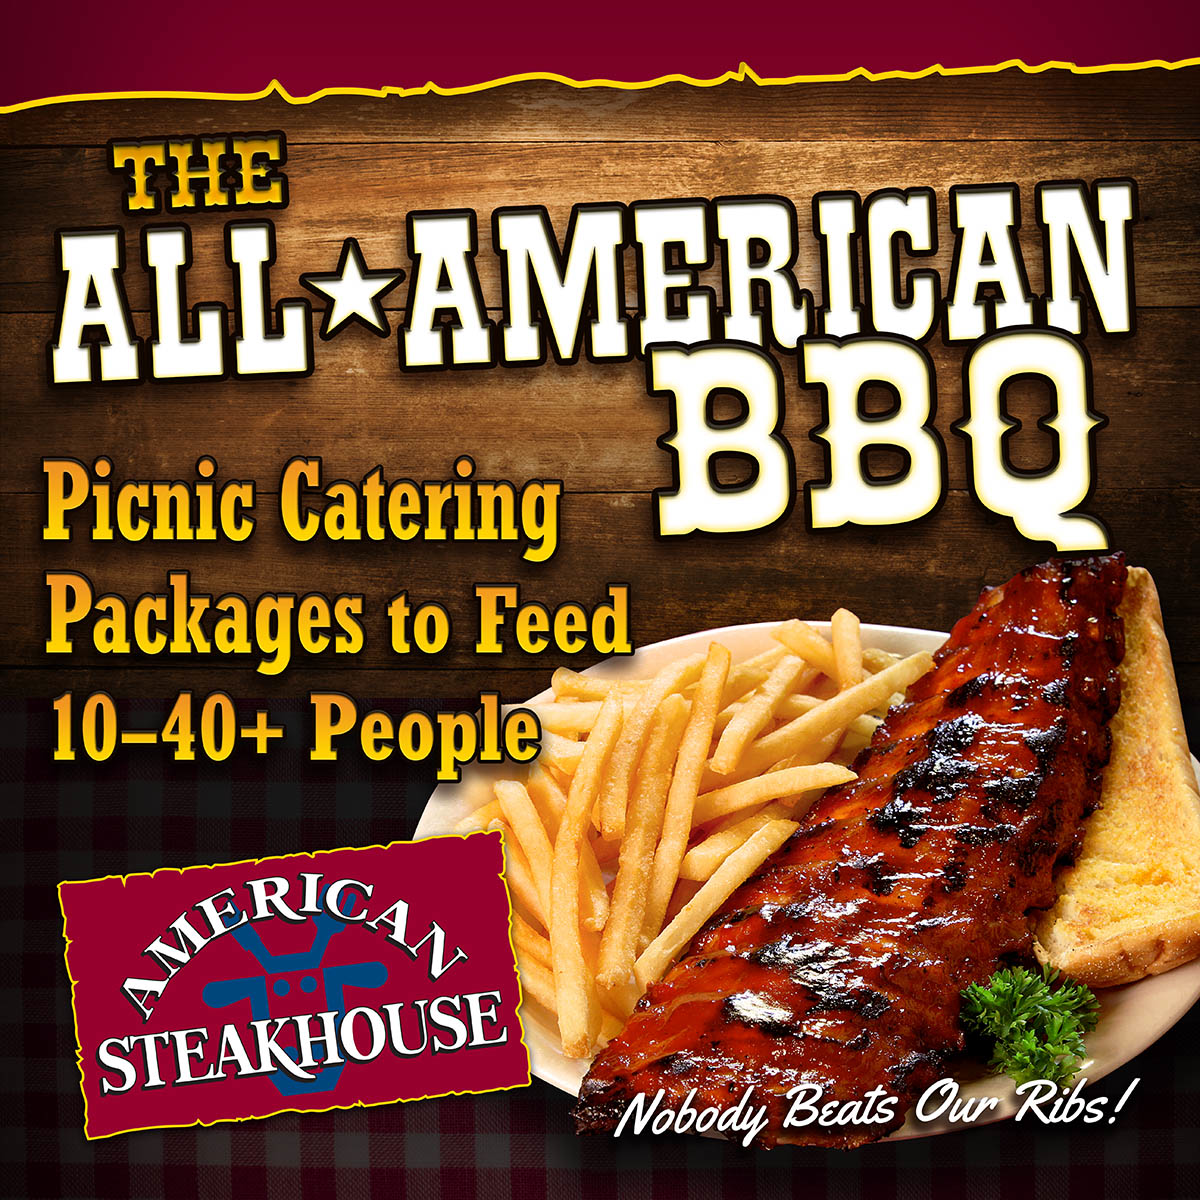 american-steakhouse-catering-bridgeport-ct